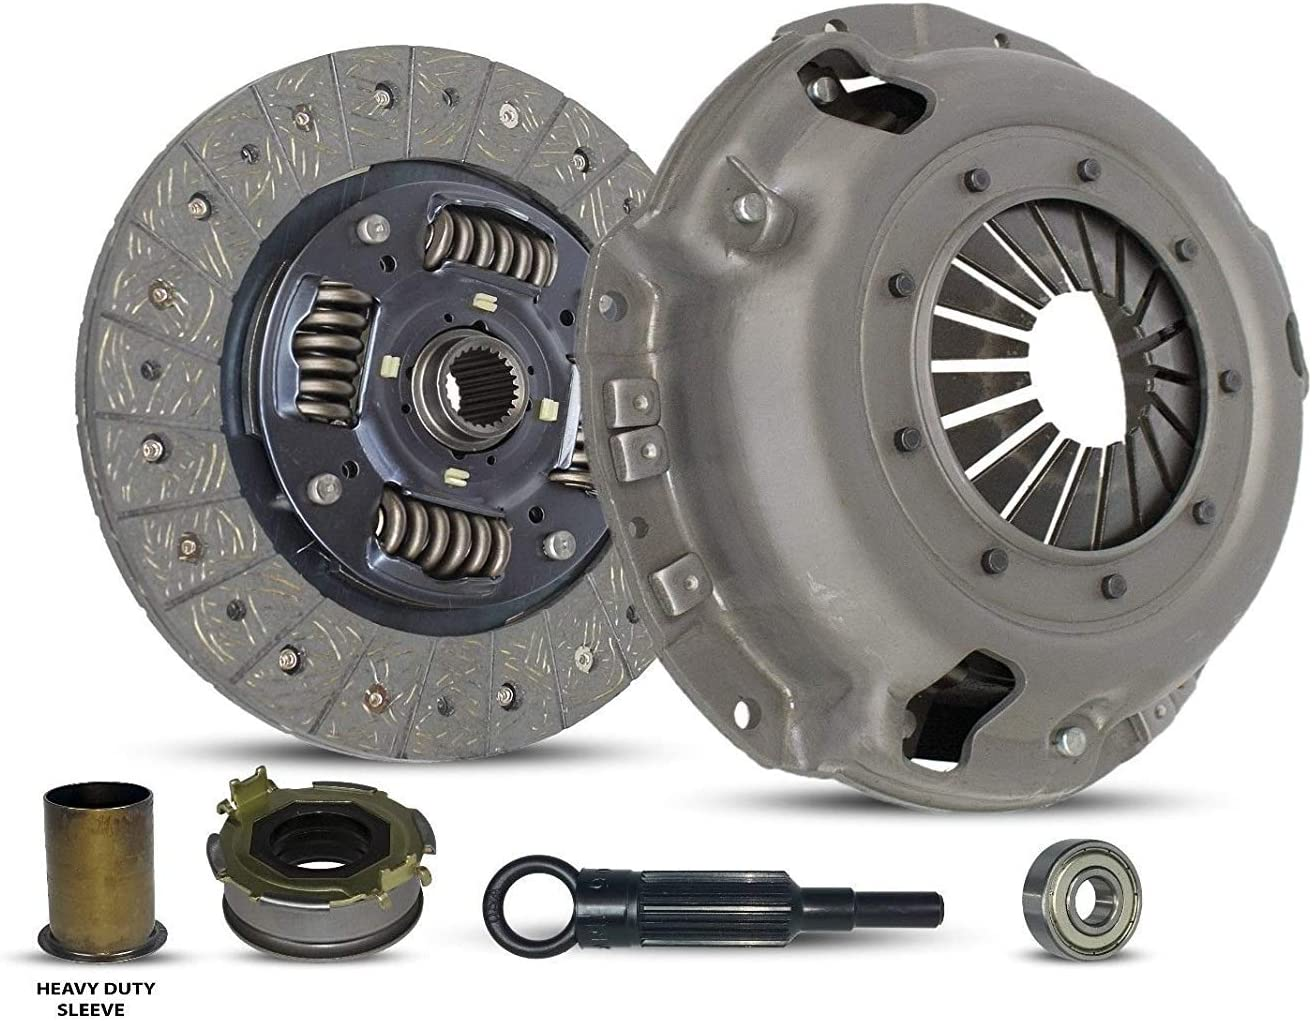 Clutch Kit And Sleeve Works With Subaru Forester Impreza Legacy X Base Limited Premium Sport Touring 2.5i Outback L H6 L.L. Bean VDC Sedan Wagon 1996-2012 2.0L H4 2.5L H4 3.0L H6